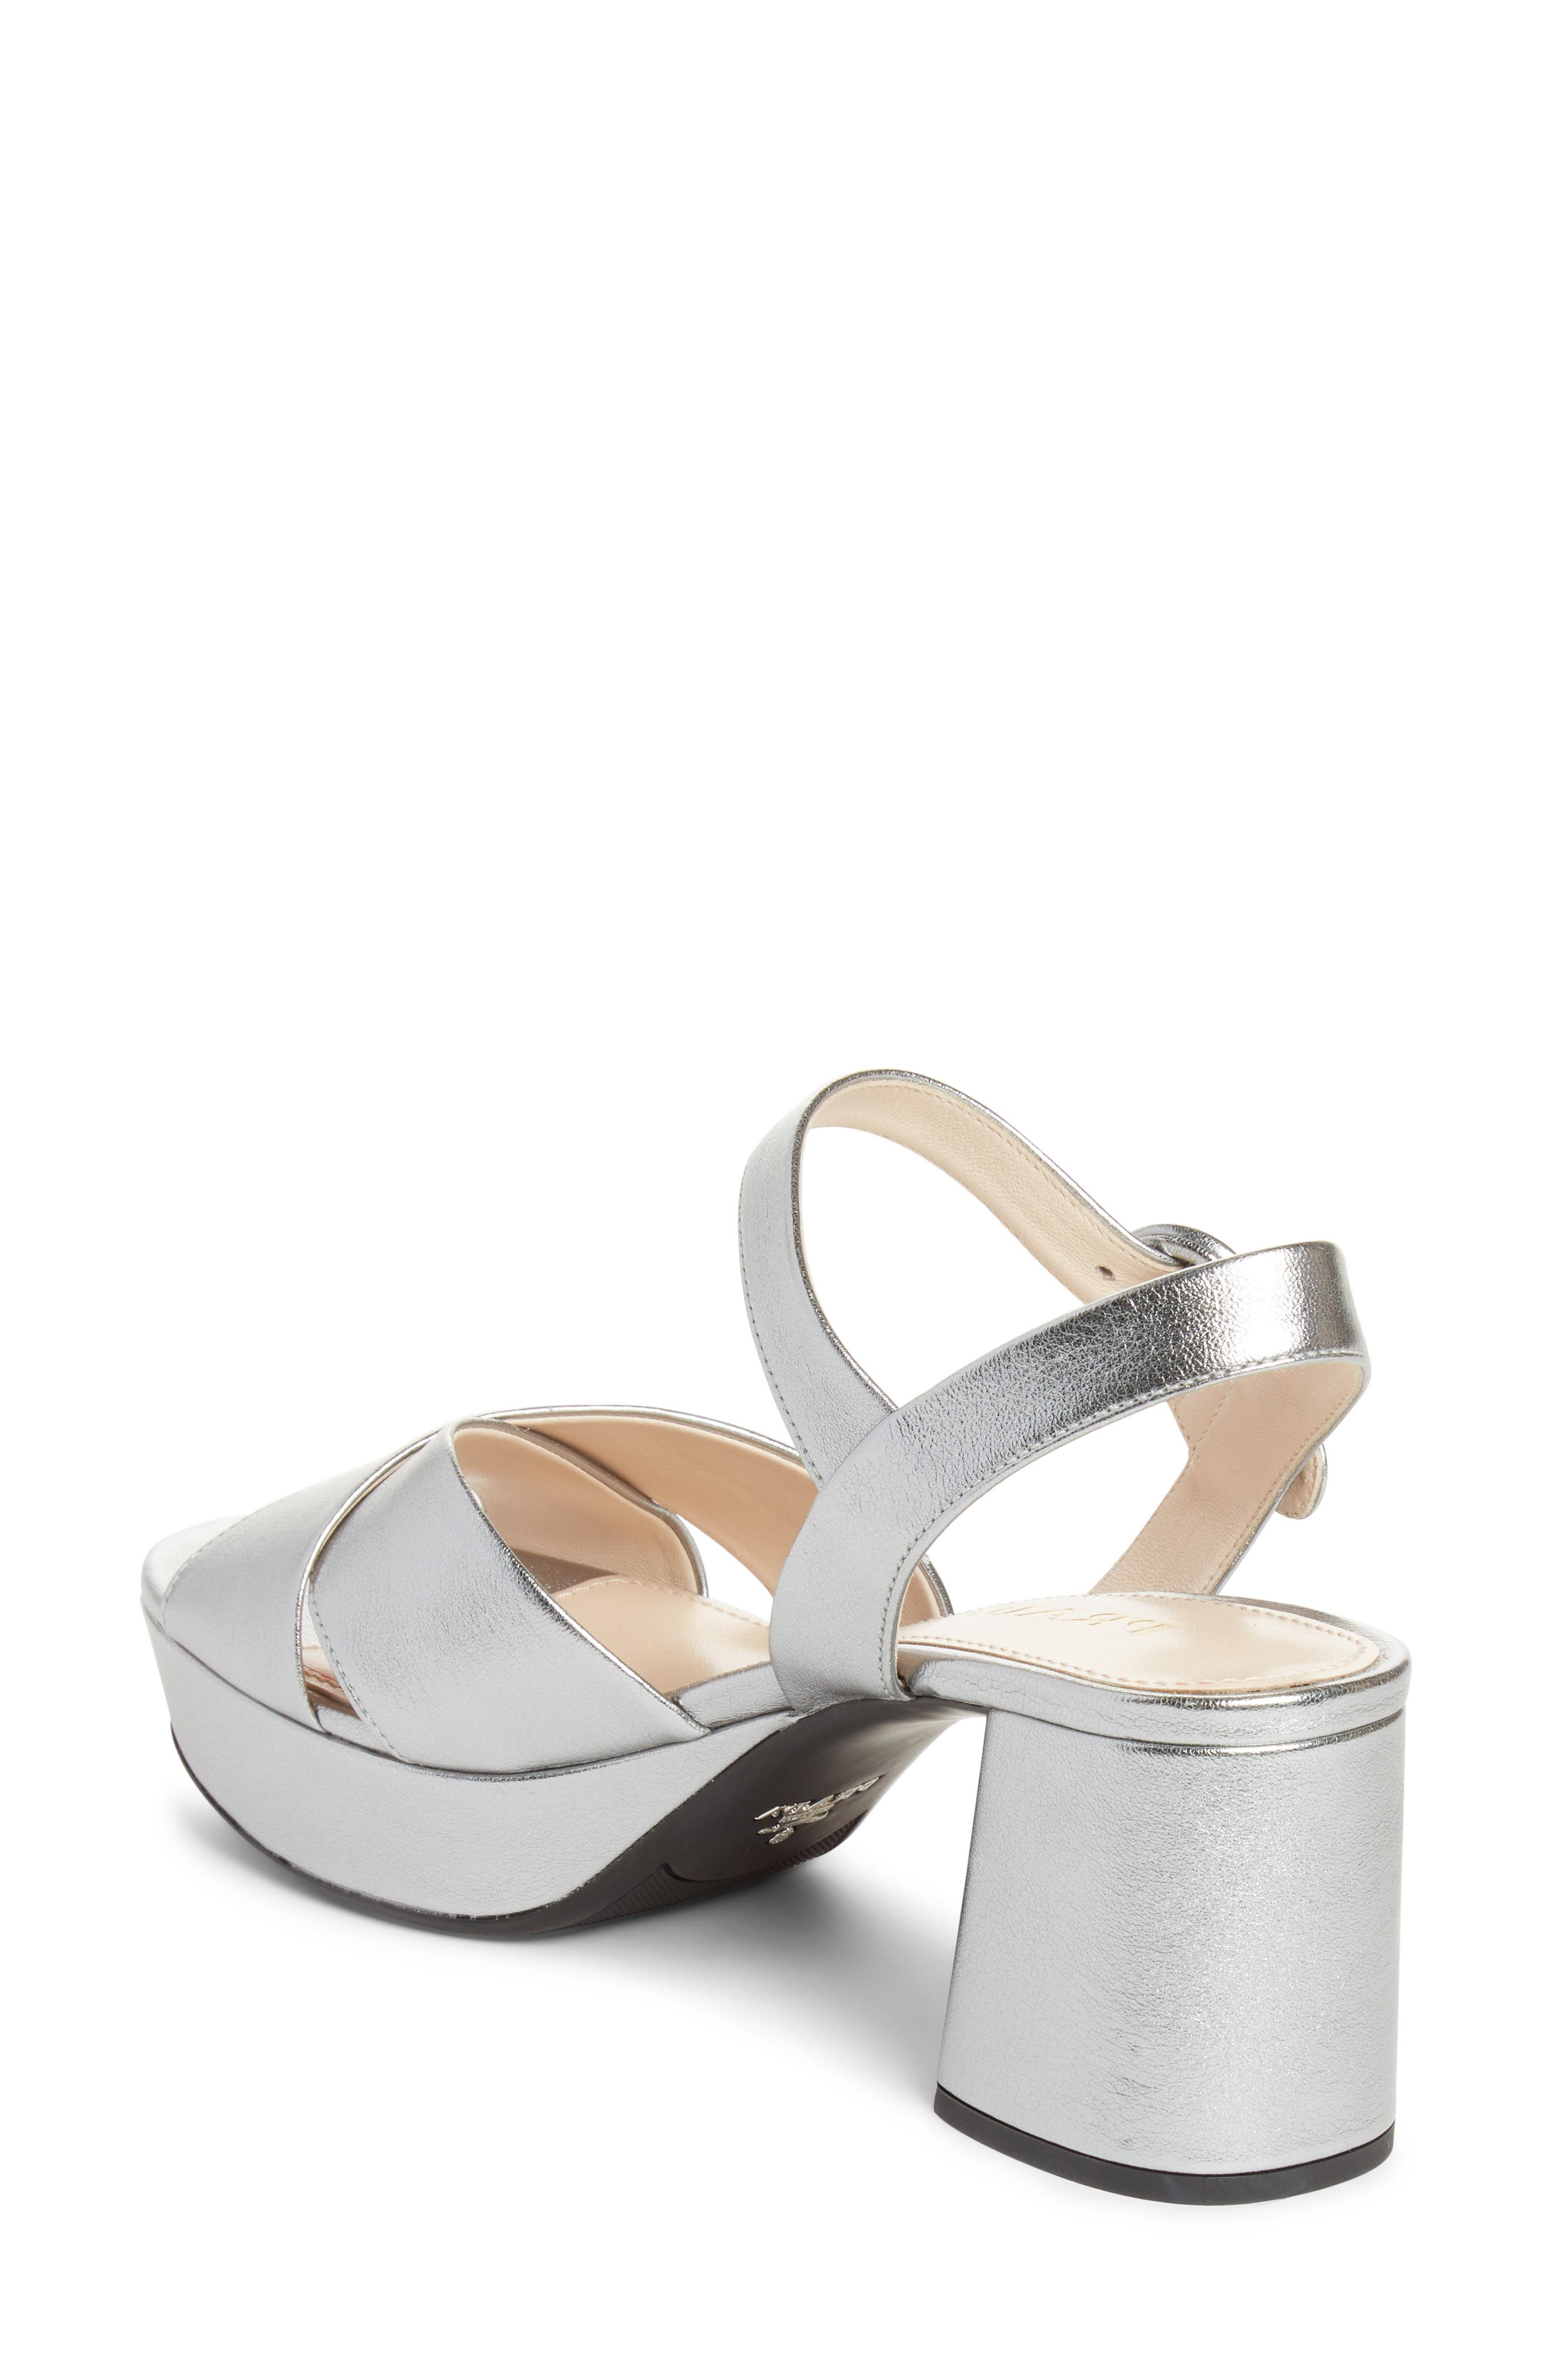 PRADA, Quarter Strap Platform Sandal, Alternate thumbnail 2, color, SILVER